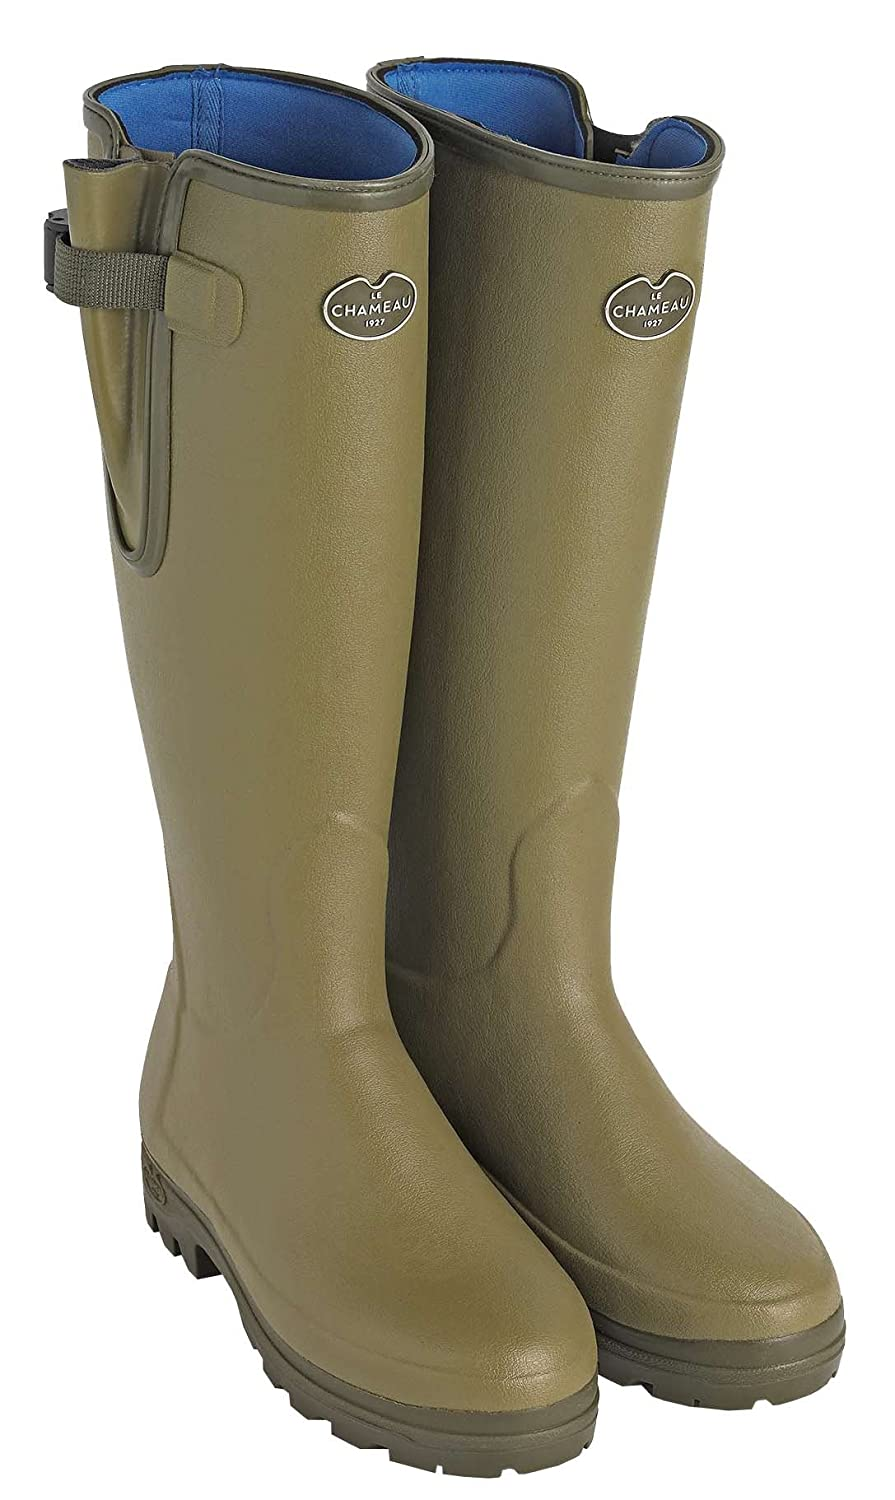 B200 green Vierzon 8 M US LE CHAMEAU 1927 Women's VIERZONORD Neoprene Lined Boot VIERZONORD LD